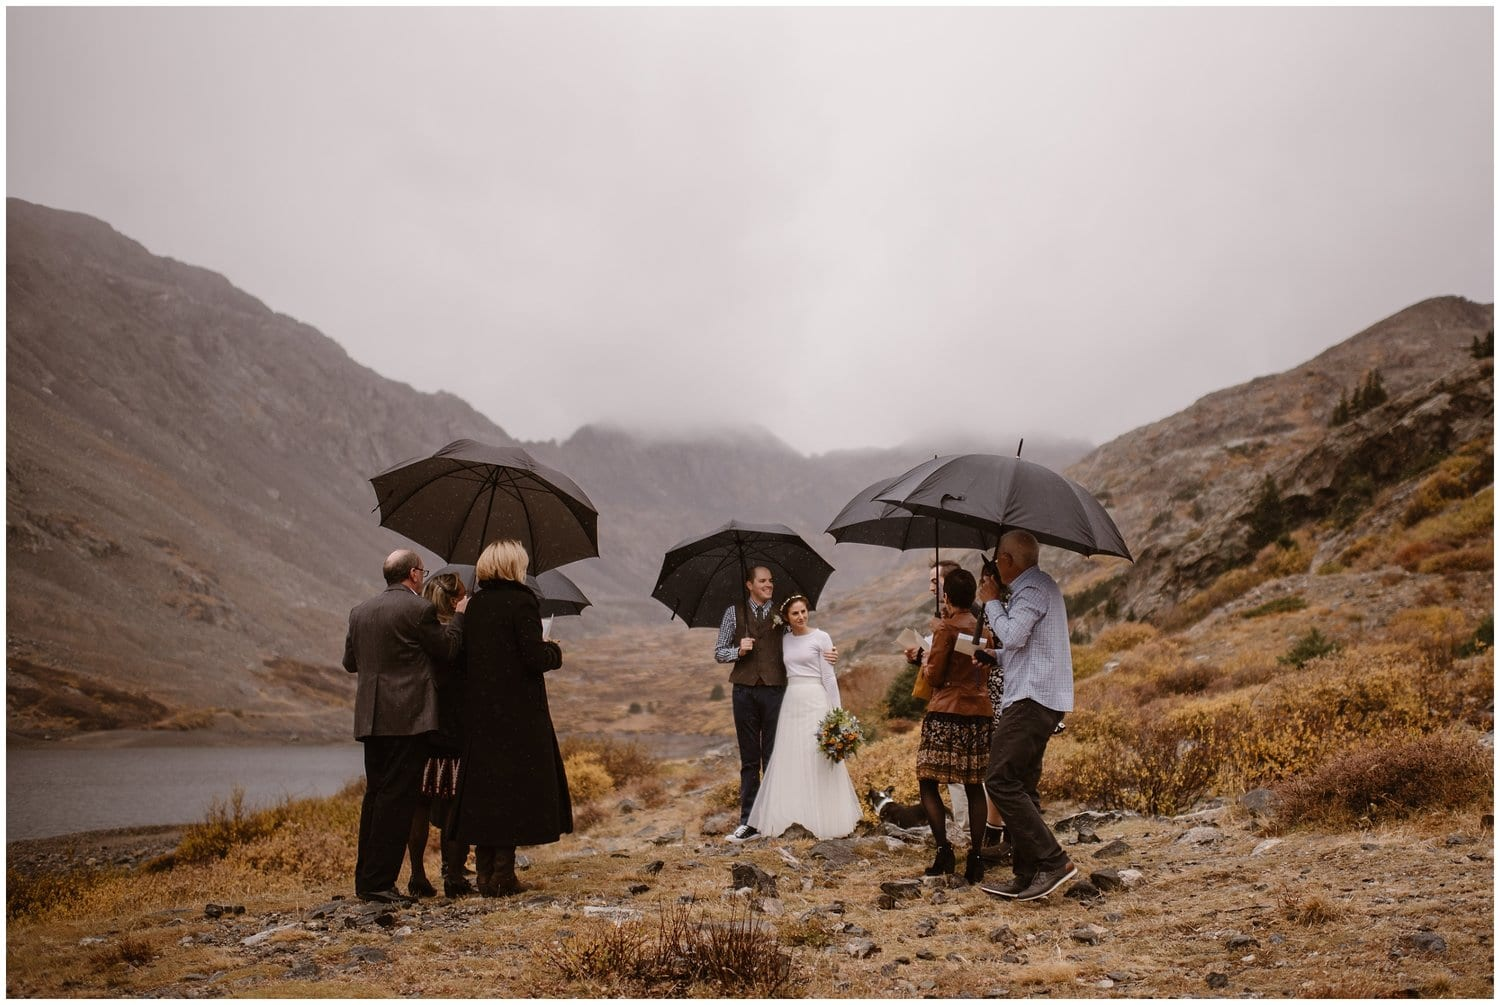 A bride and groom look at their loved ones while holding umbrellas during their wedding ceremony.